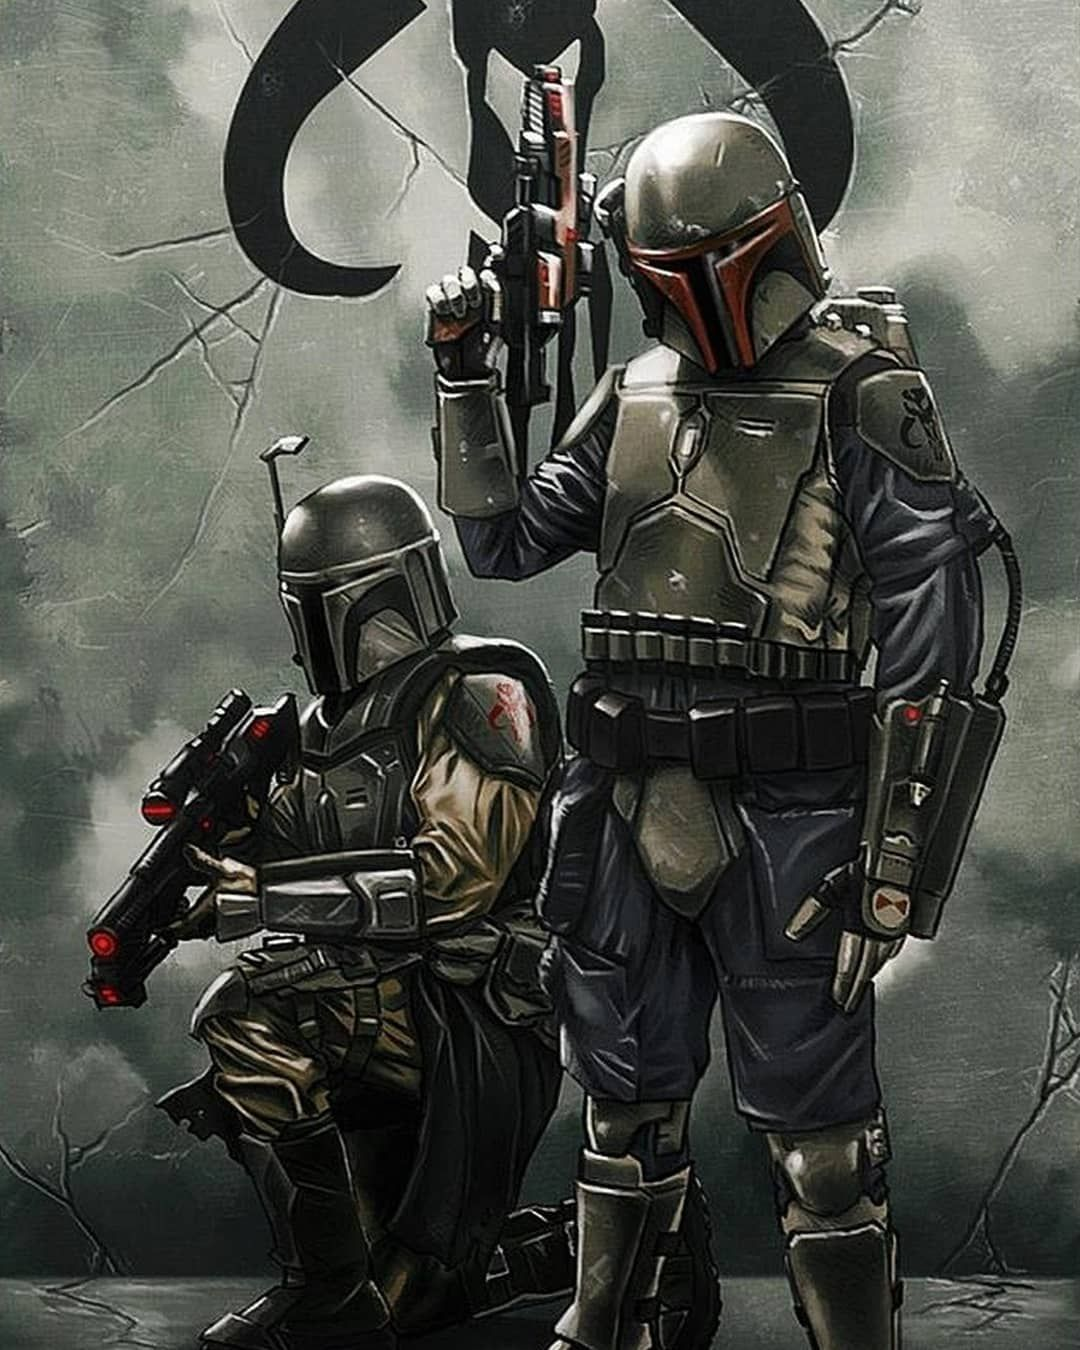 48211952 Pin Em Android Wallpaper Idtubewall Icu Star Wars Pictures Star Wars Bounty Hunter Star Wars Images